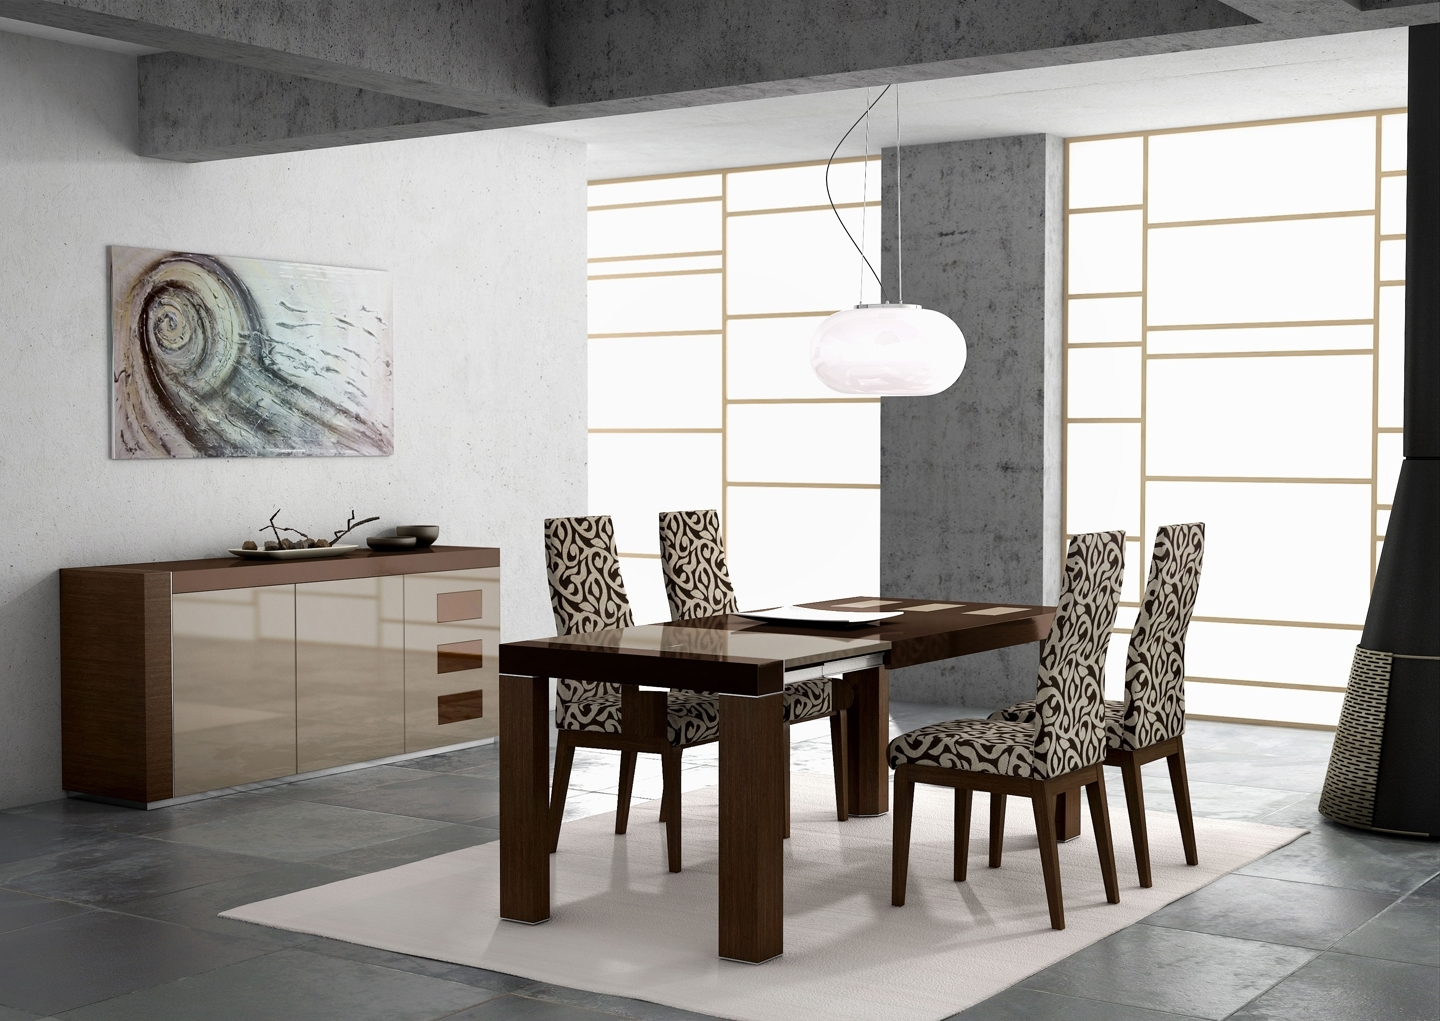 Photos: Irene Table Ada Chairs Lacquered Modern Dining Sets In Favorite Cream Lacquer Dining Tables (View 17 of 25)